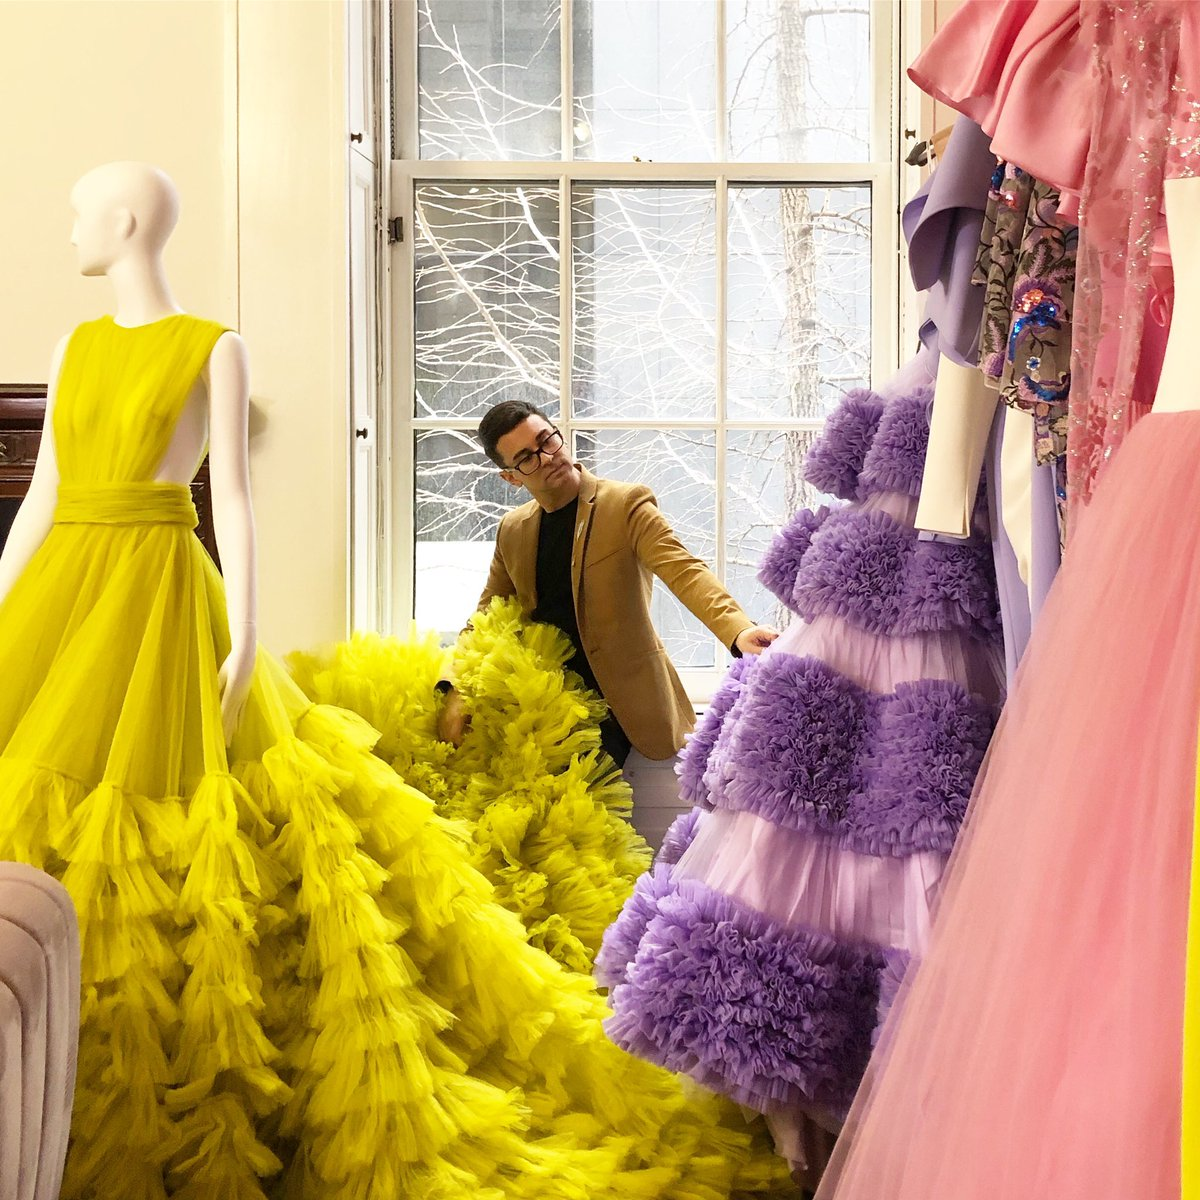 On this beautiful day in NYC let's sit and reflect things in a land of tulle. #happyfriday